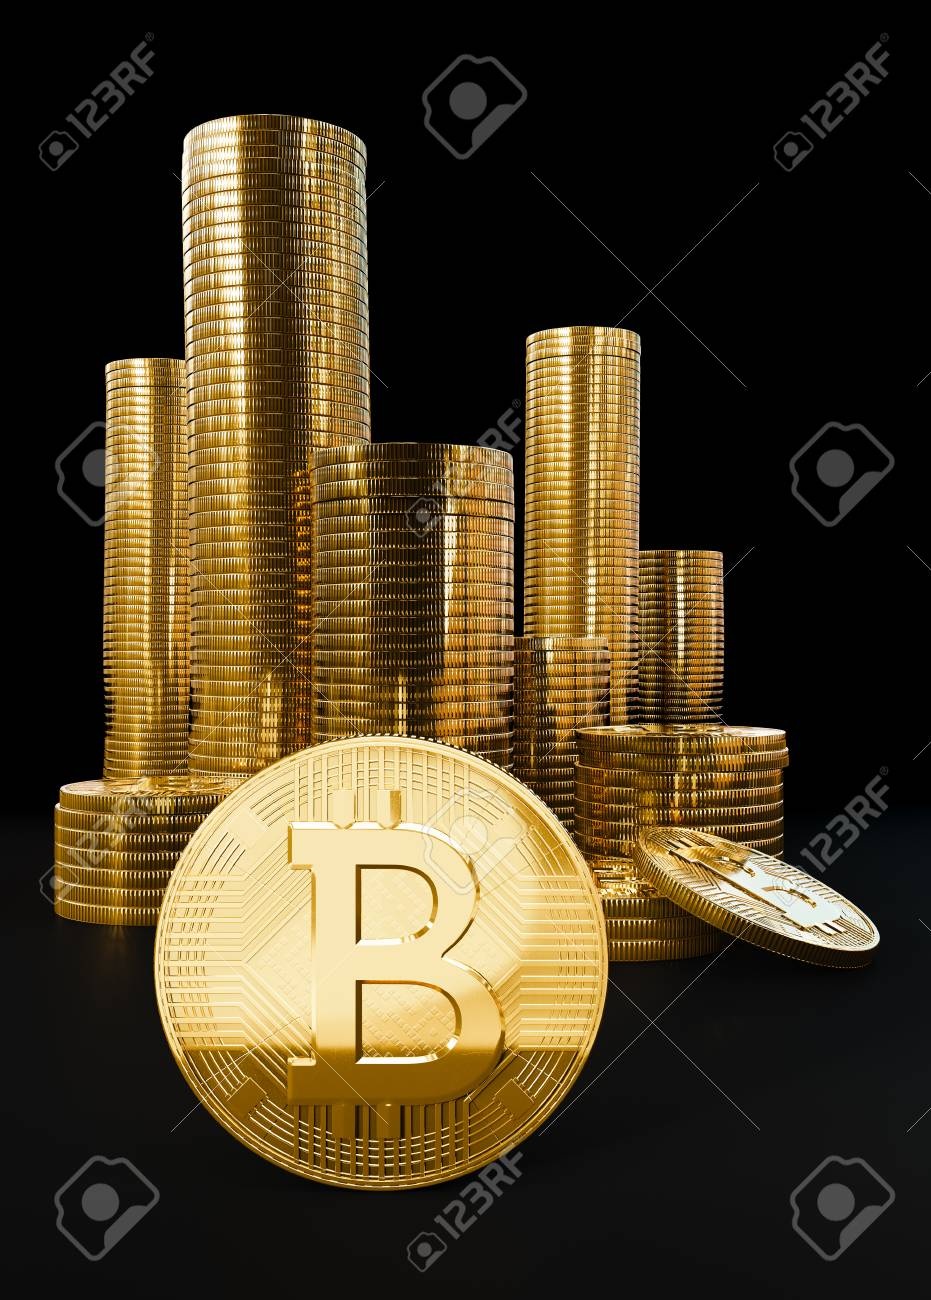 Bitcoin digital currency value, pile of gold coins